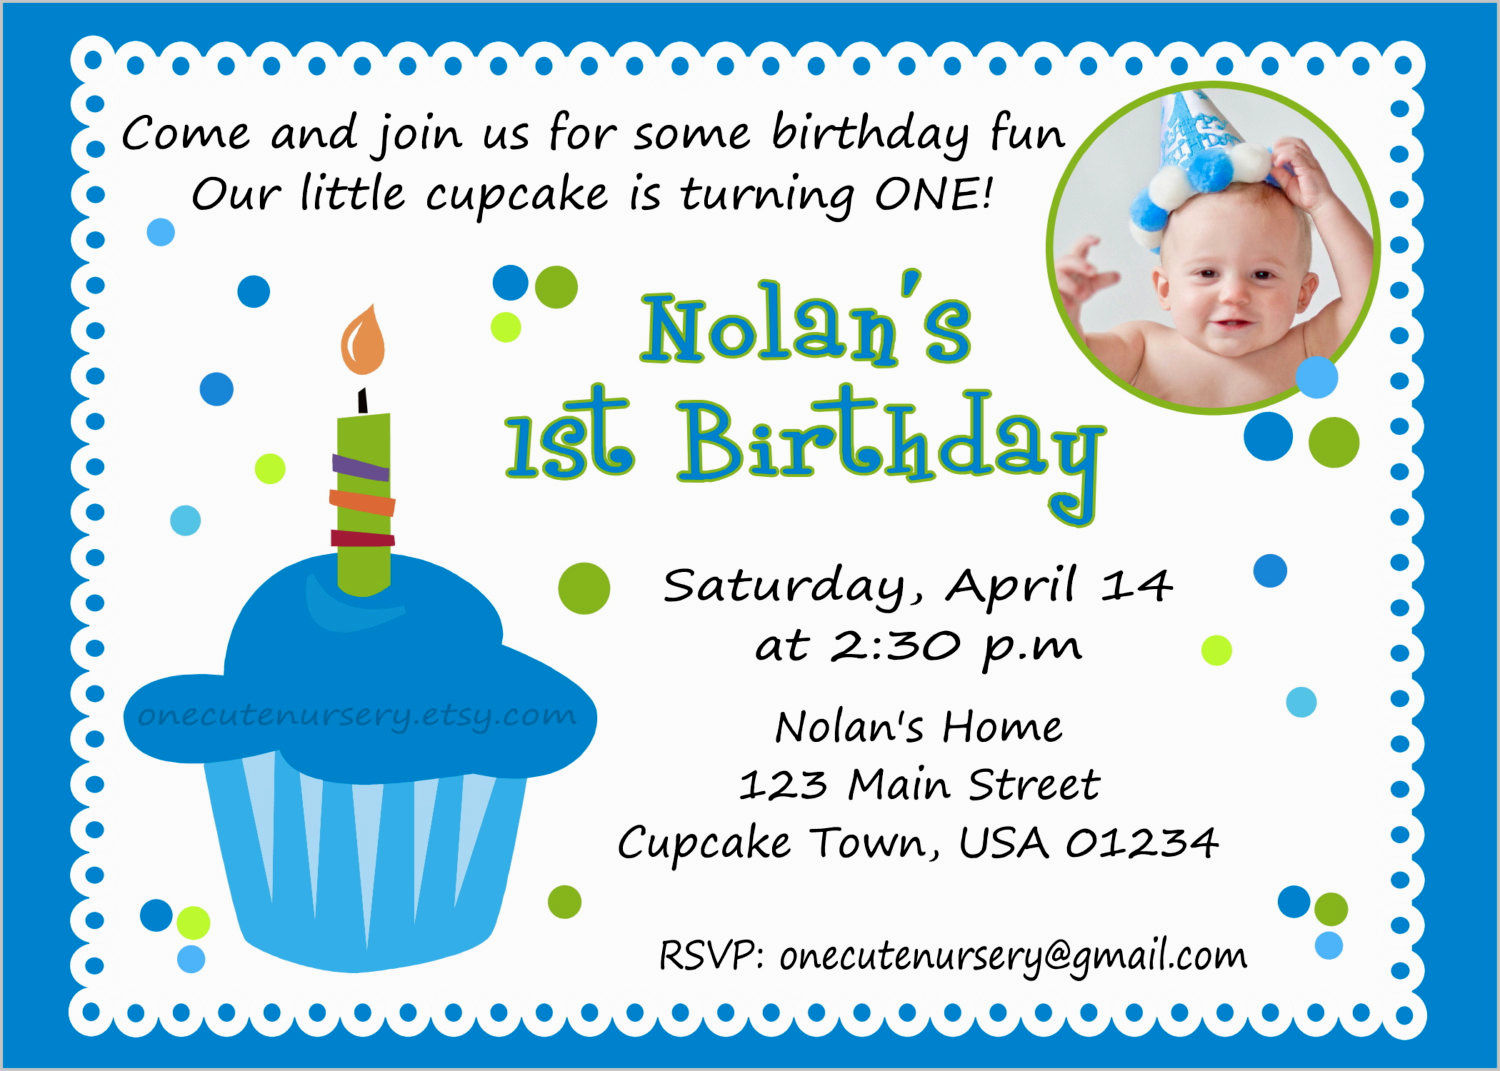 1st birthday greeting cards for baby boy ; 1st%2520birthday%2520invitation%2520quotes%2520for%2520baby%2520boy%2520;%2520free_baby_1st_birthday_invitation_card_template_2